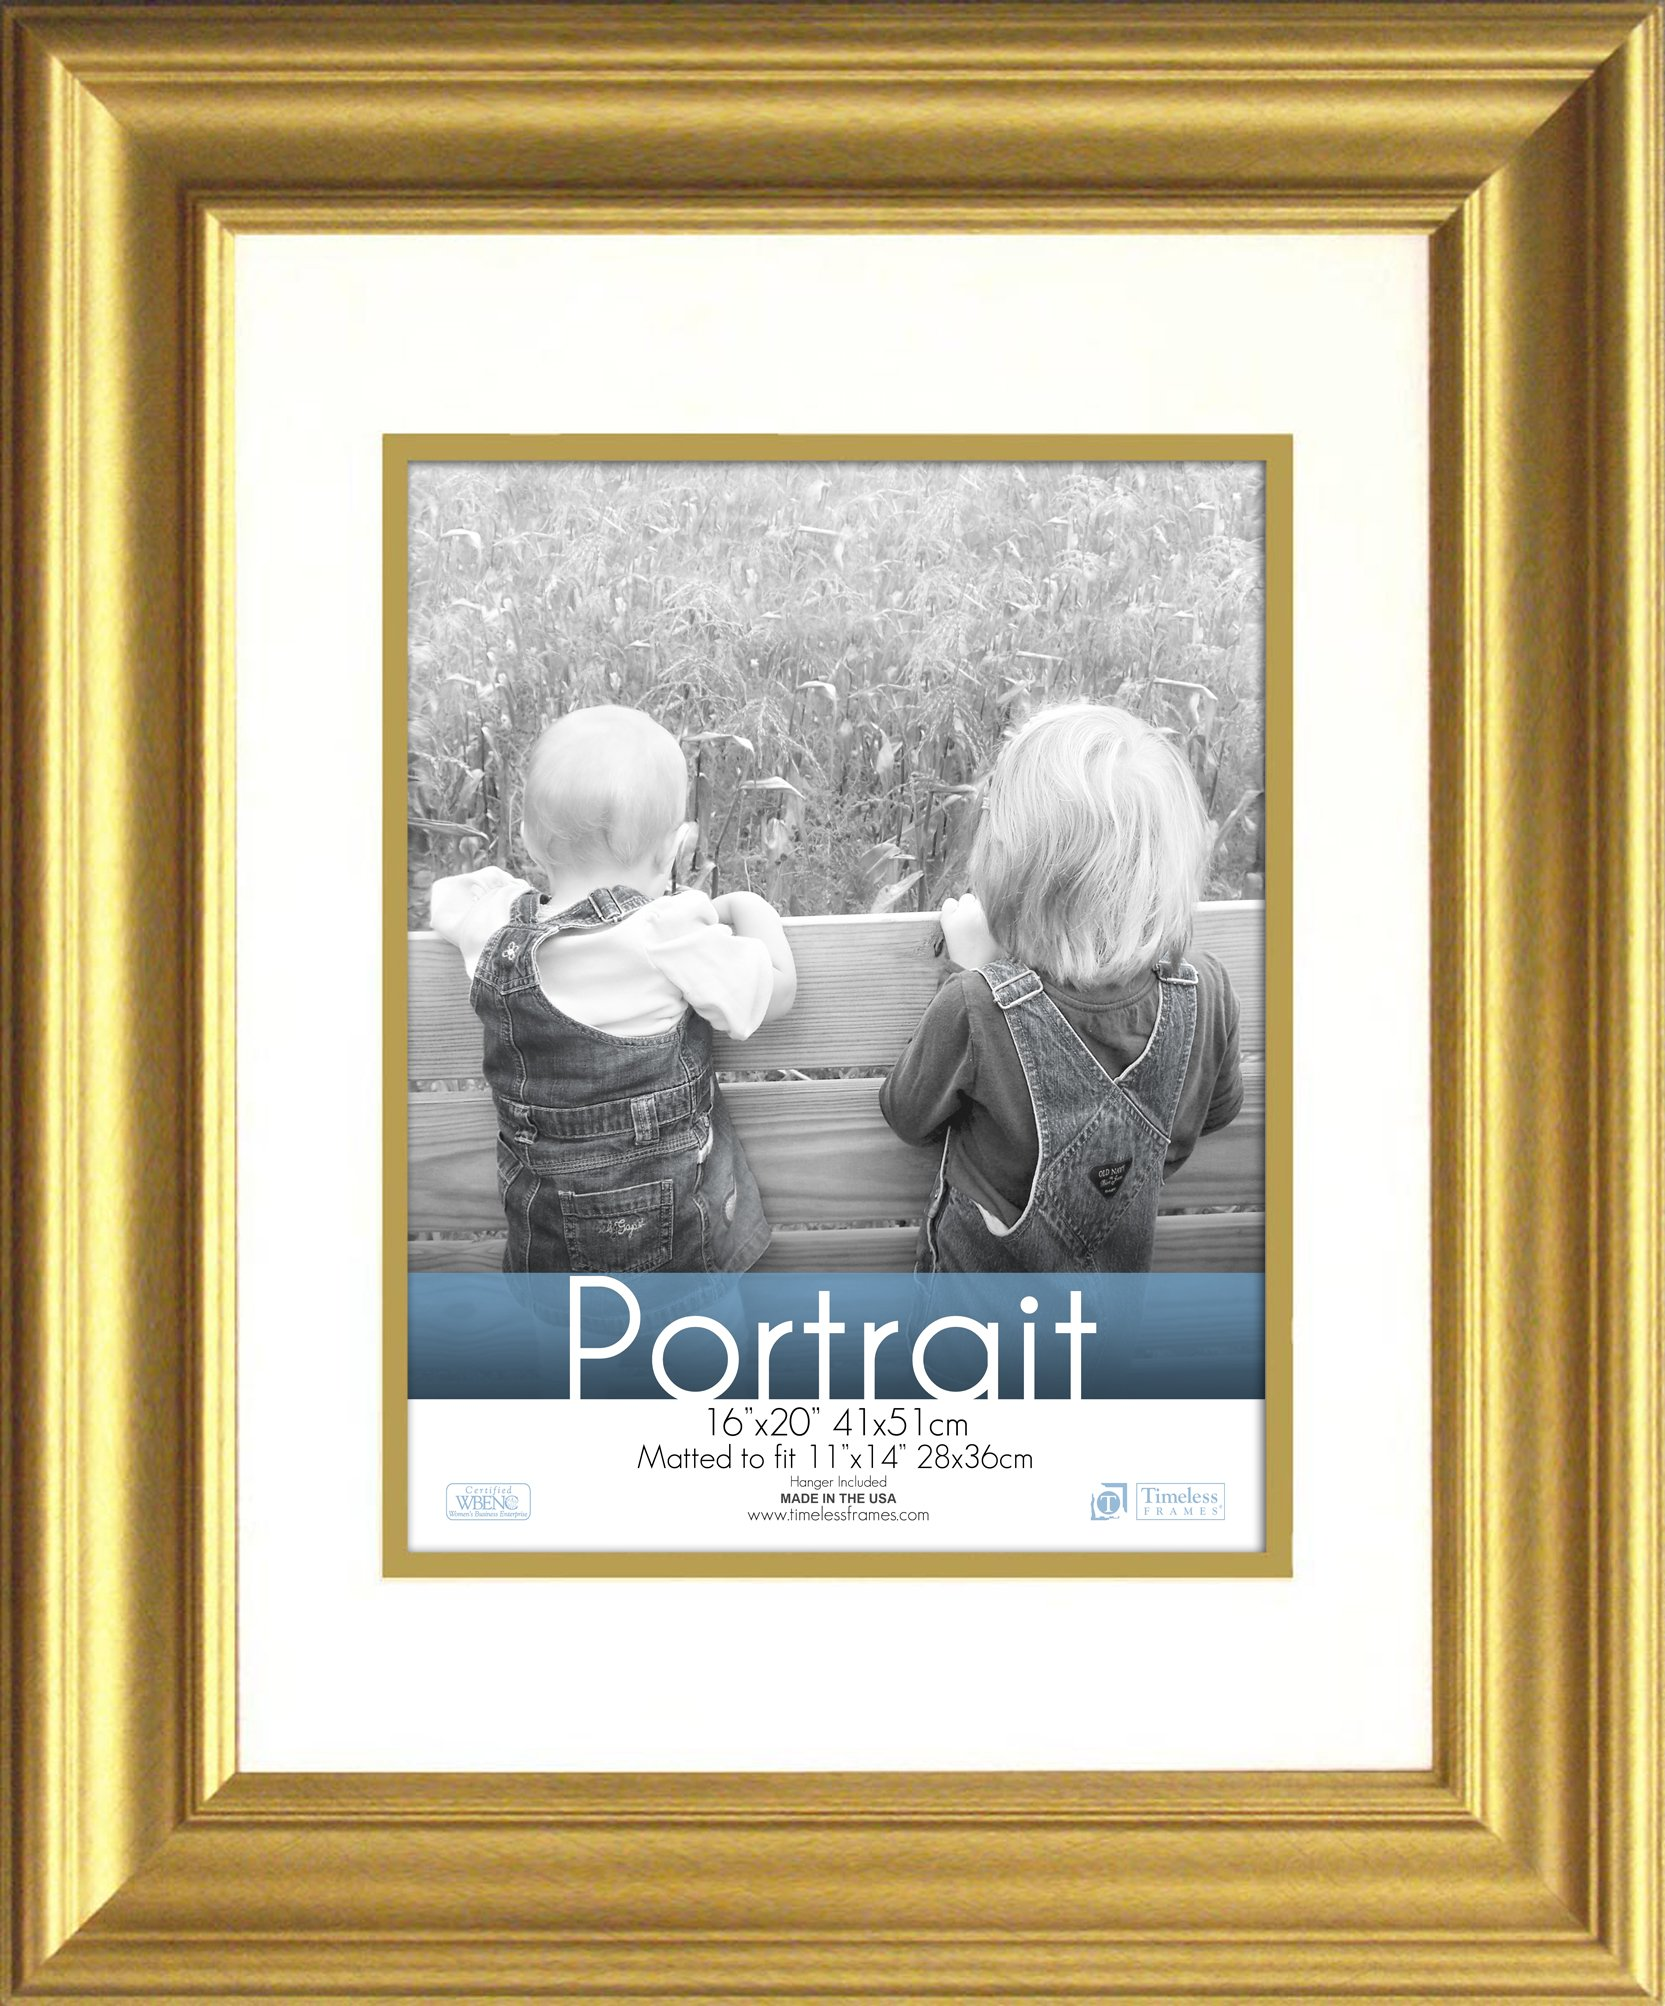 Timeless Wall Classic Frames 16x20 Inch Photo Poster Portrait Wall ...